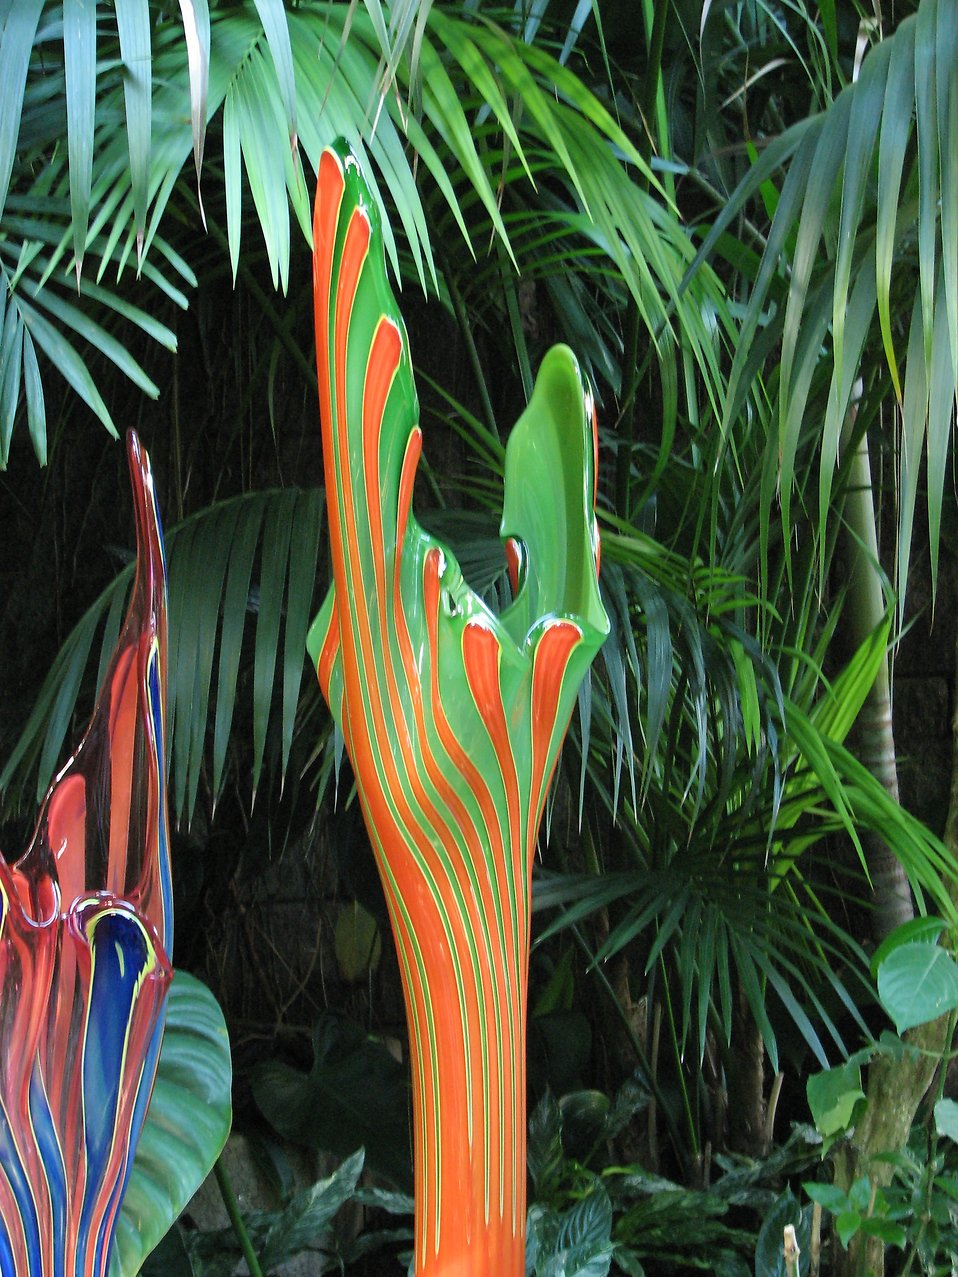 A glass sculpture among tropical foliage at the Atlanta Botanical Garden : Free Stock Photo